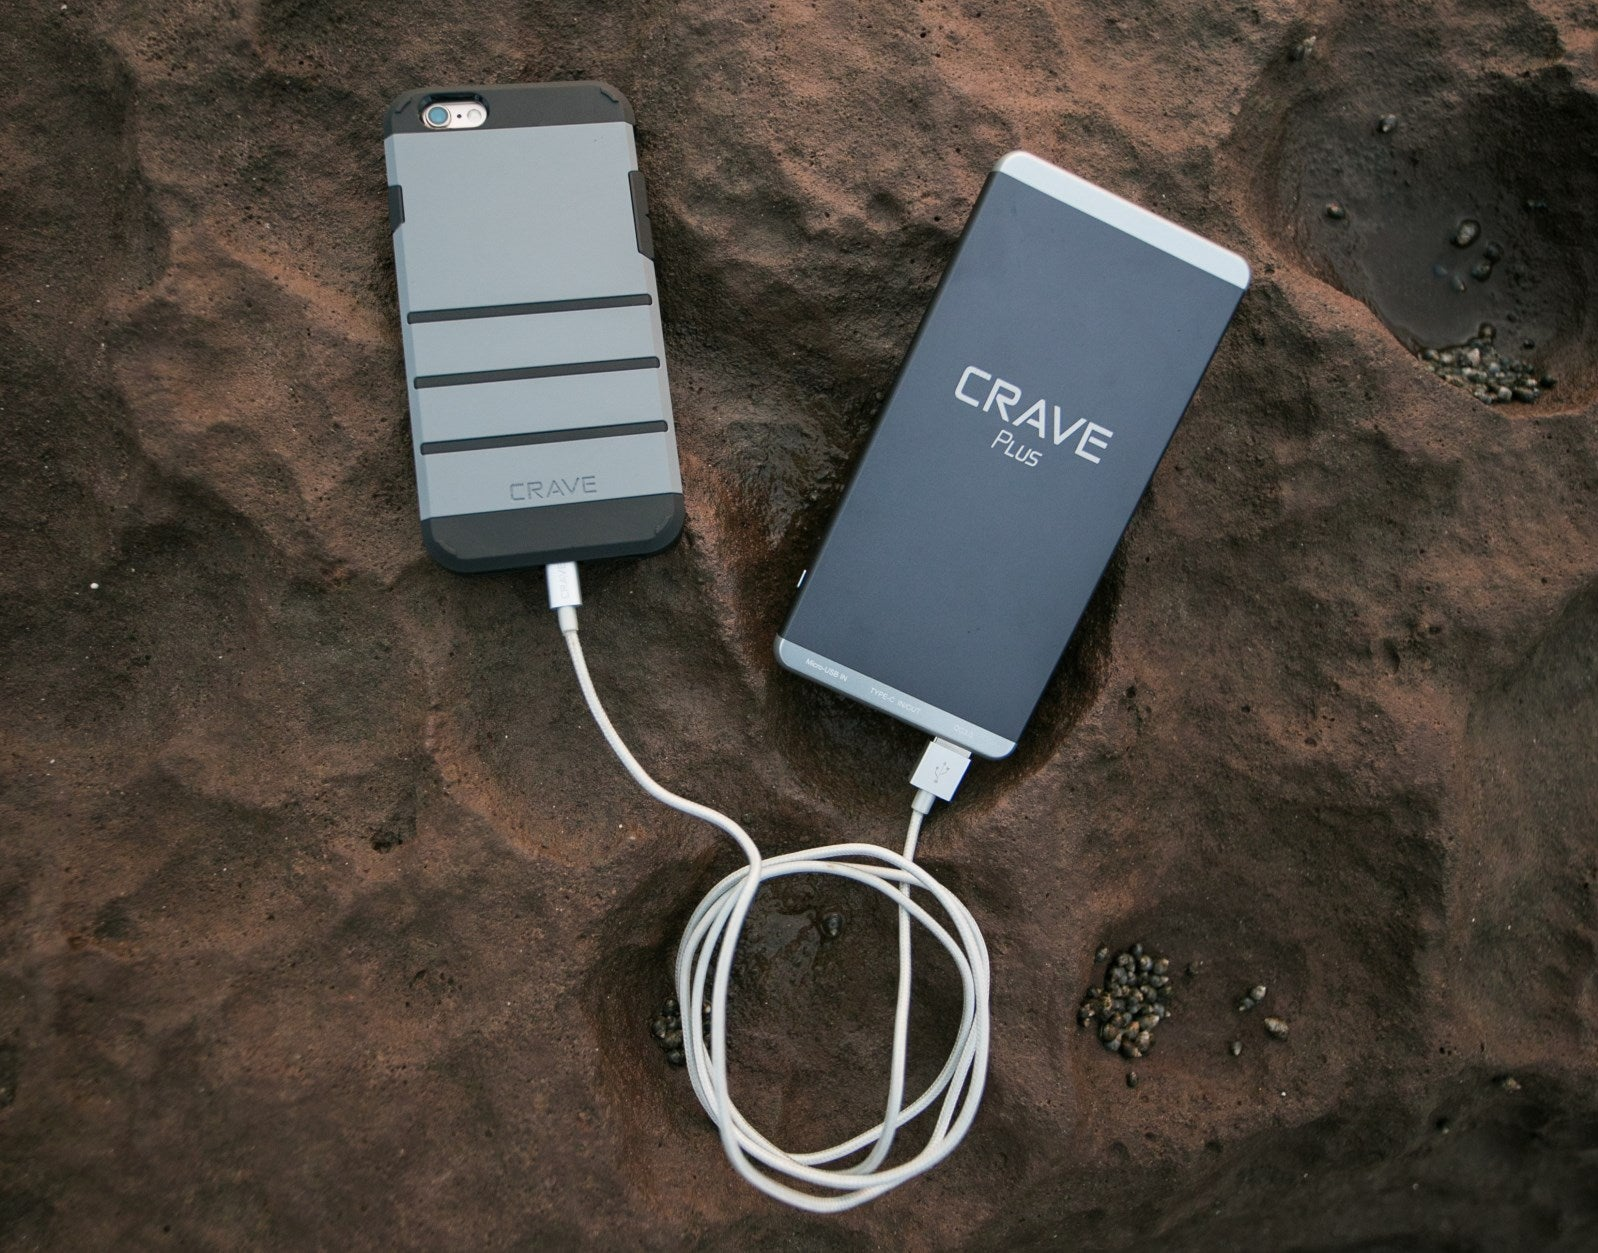 Crave Slim Power Bank charging an Apple smartphone iphone